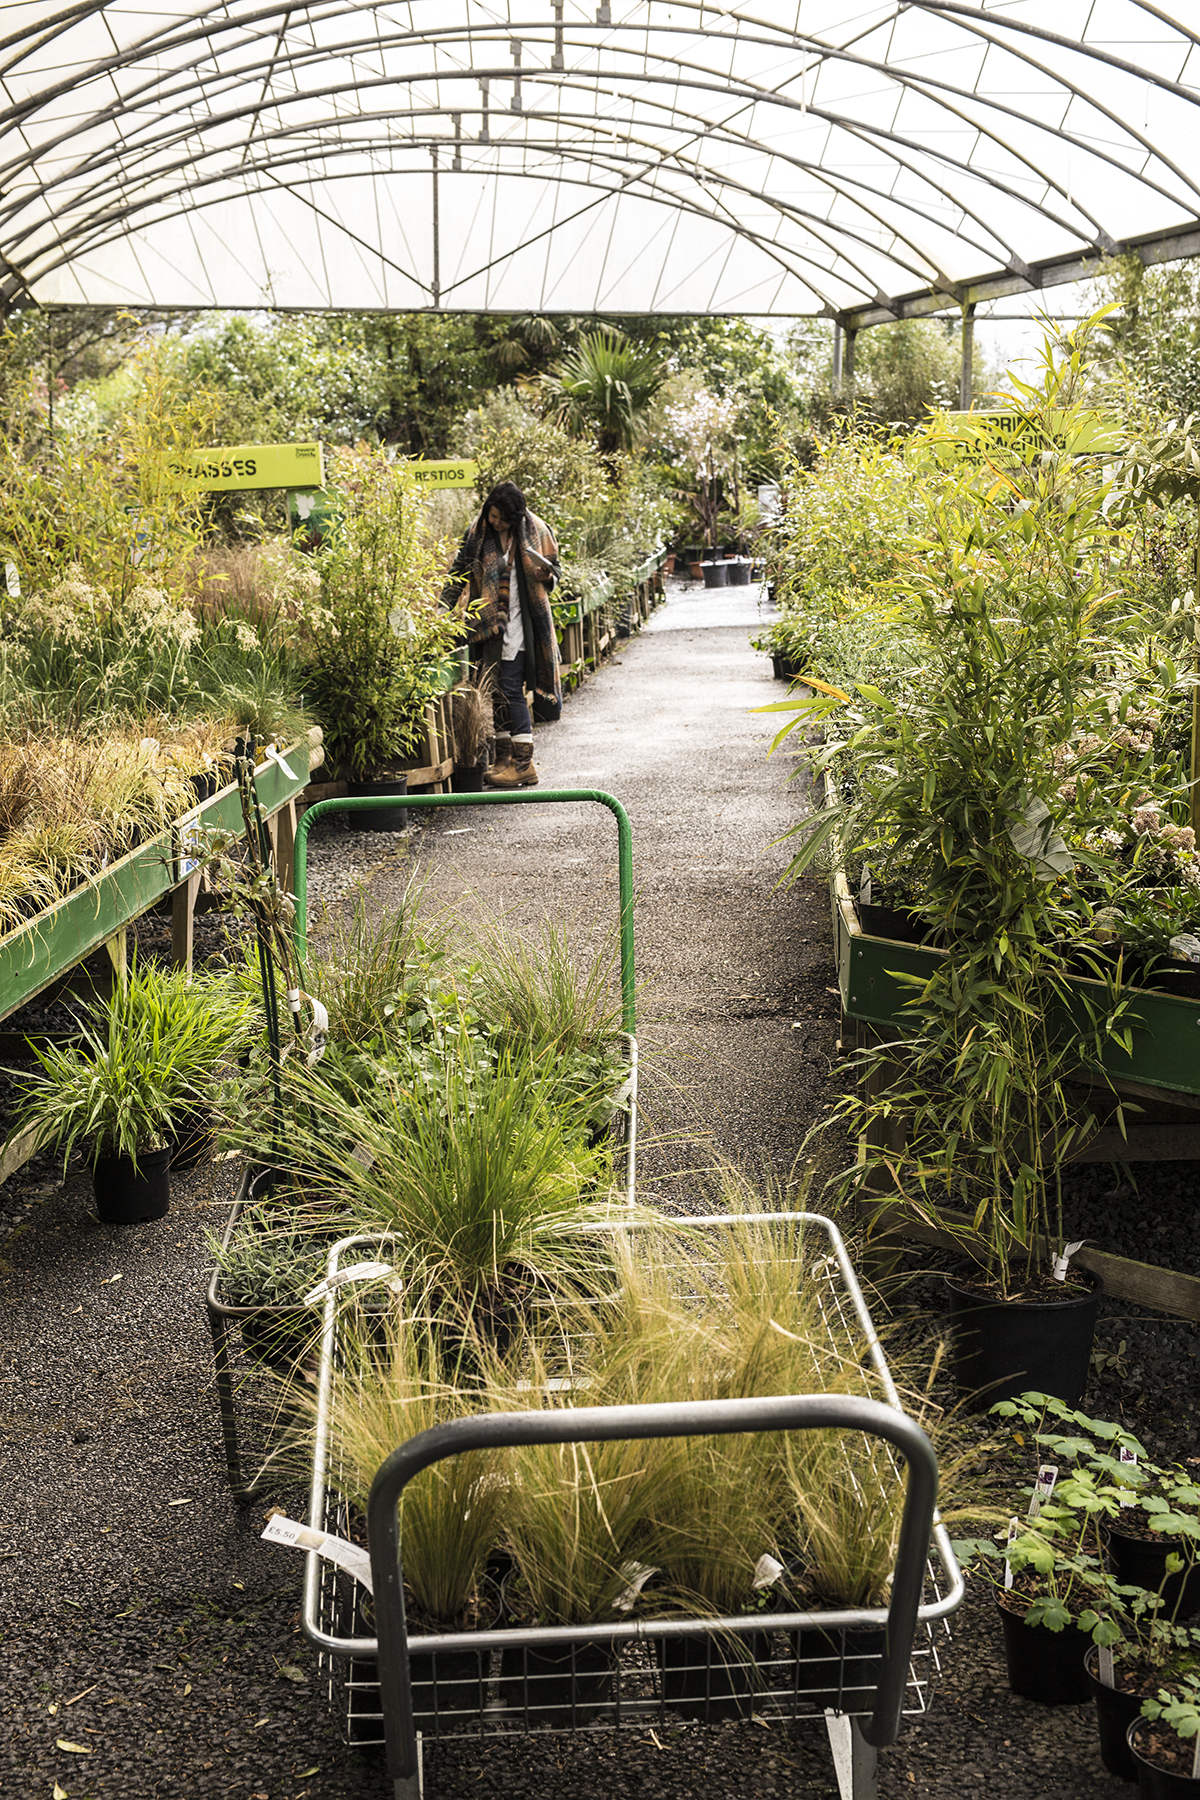 Trevena Cross plants on benches and in trolley